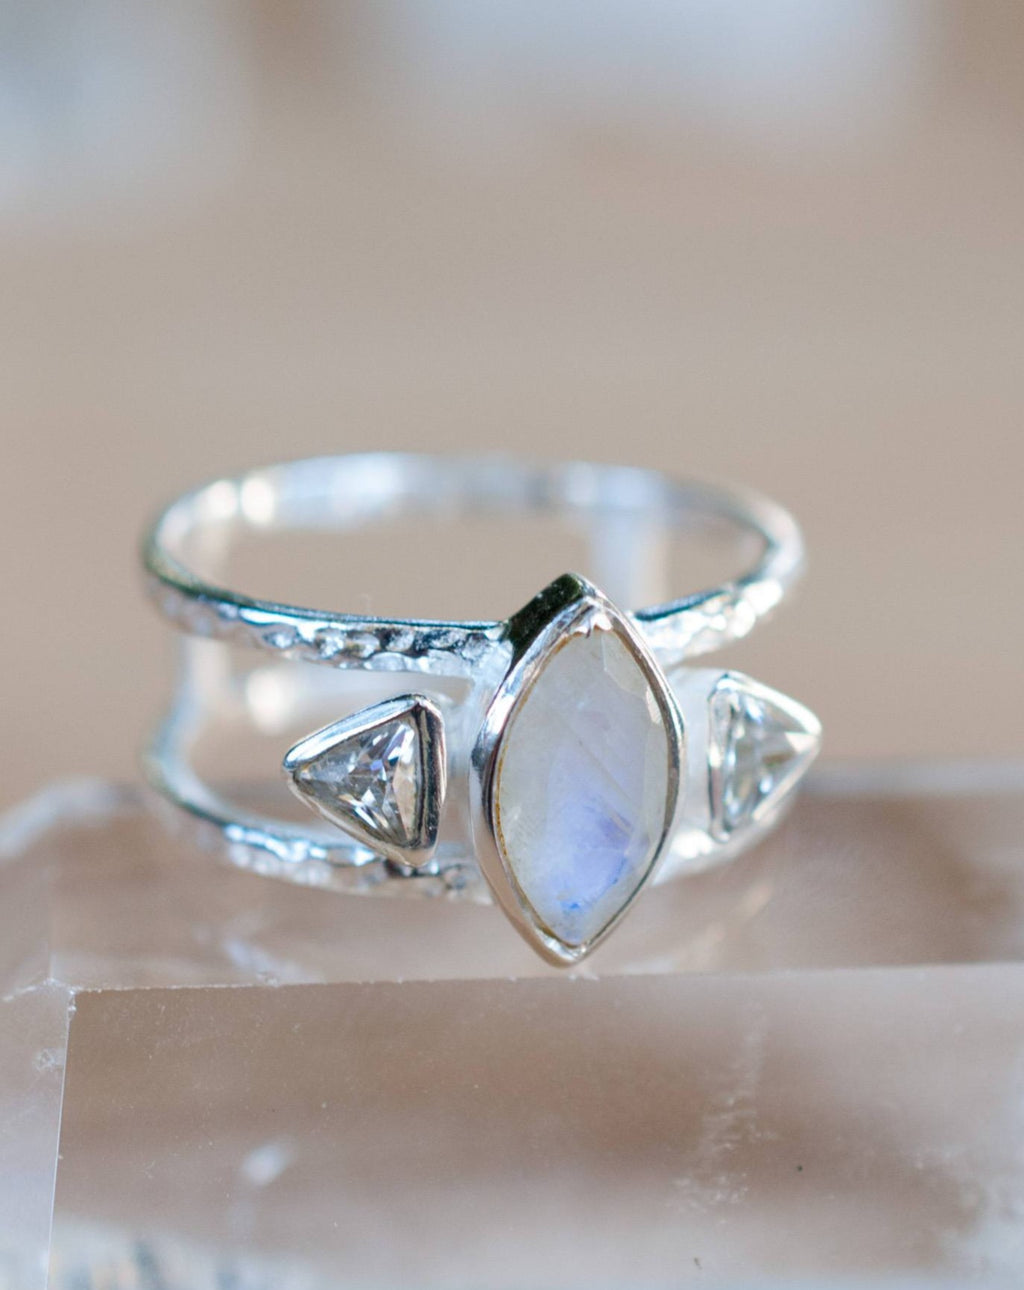 Moonstone & White Topaz Ring * Sterling Silver Ring * Statement Ring * Gemstone Ring *  Bridal Ring * Wedding Ring * Organic Ring * BJR150